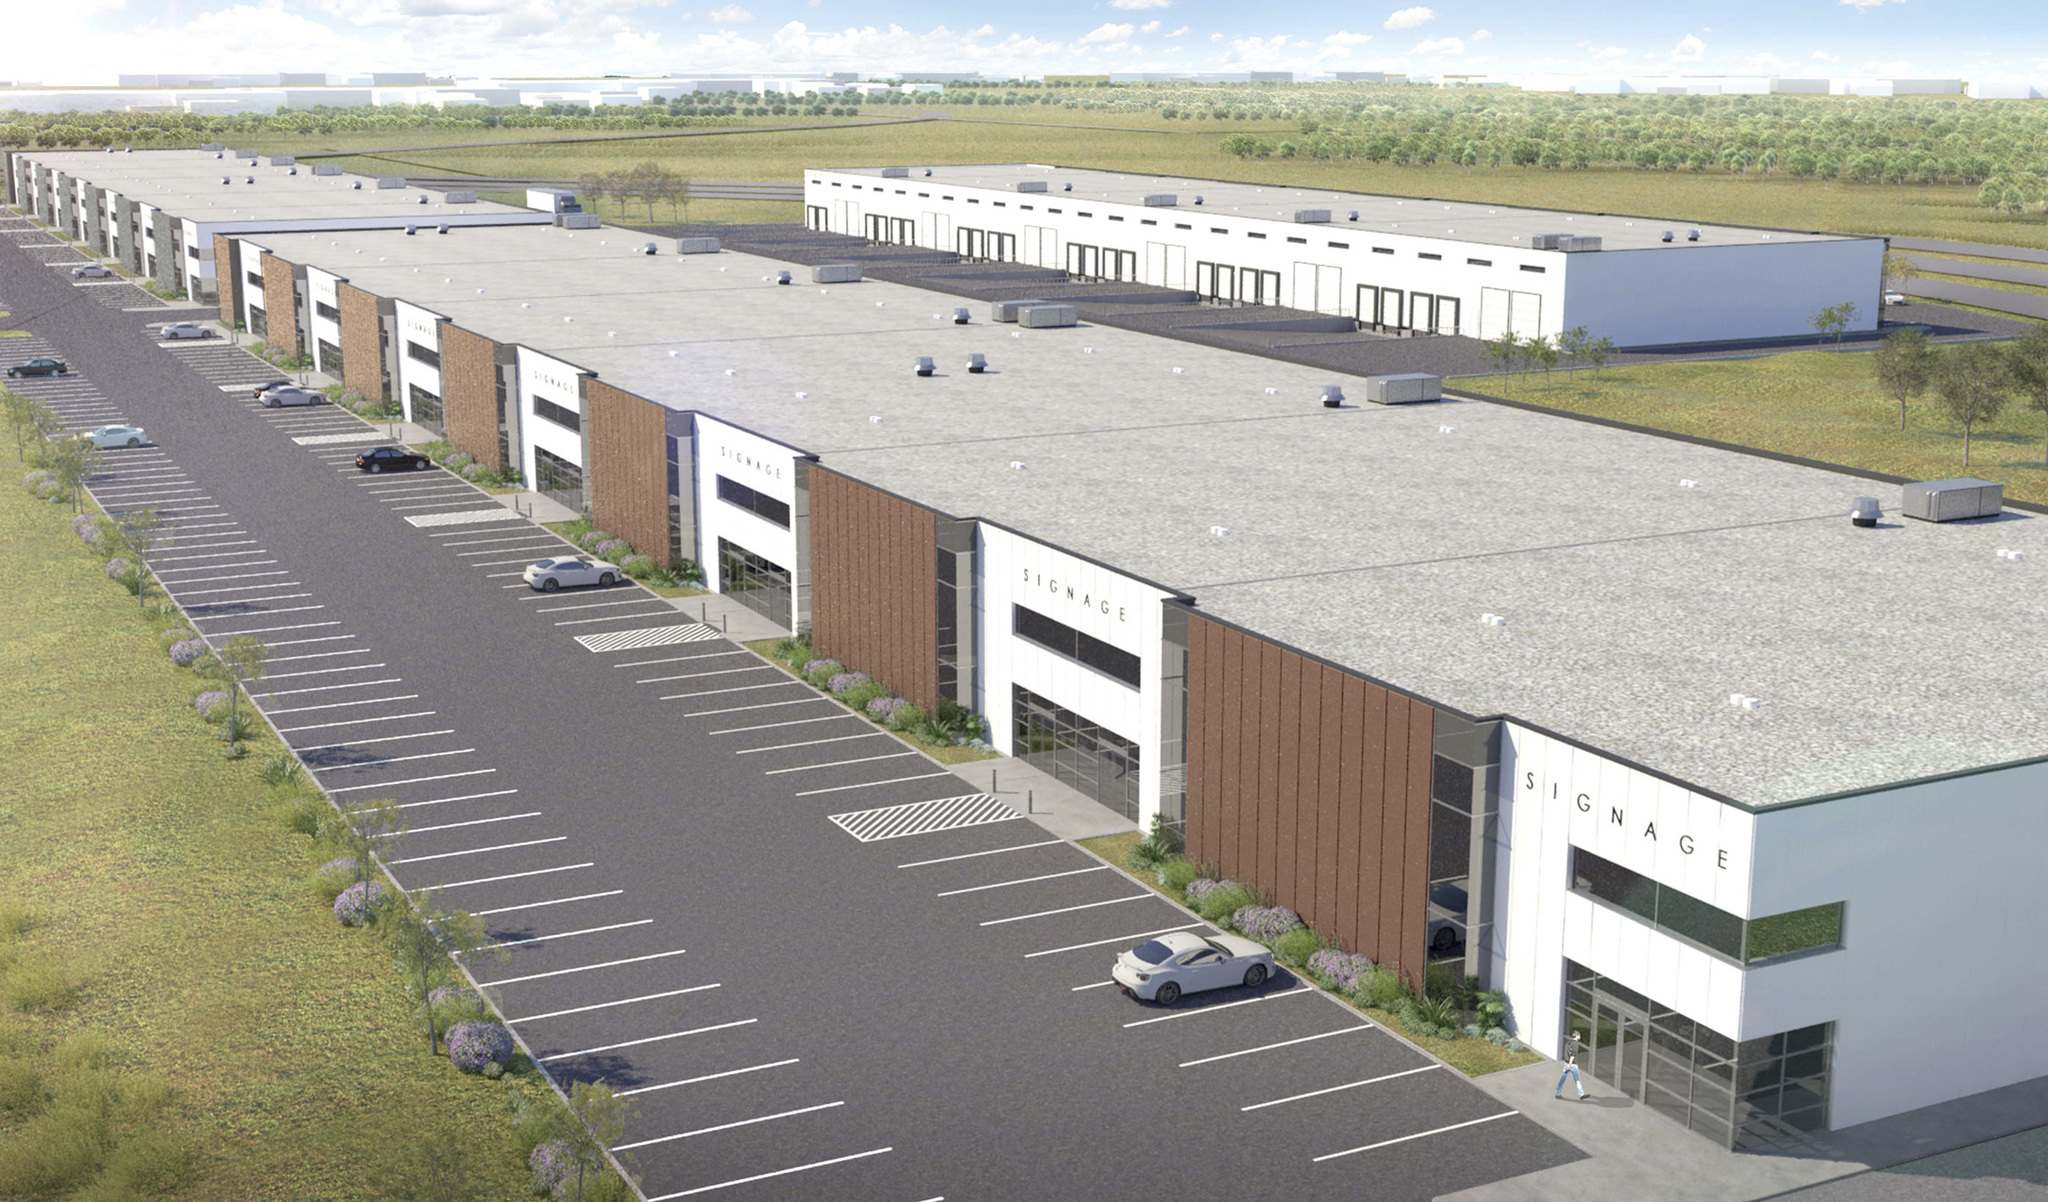 MMI Asset Management Ltd. plans to build two 80,000-square-foot and one 60,000-square-foot single-storey buildings with 28-foot clearance. (Supplied)</p>